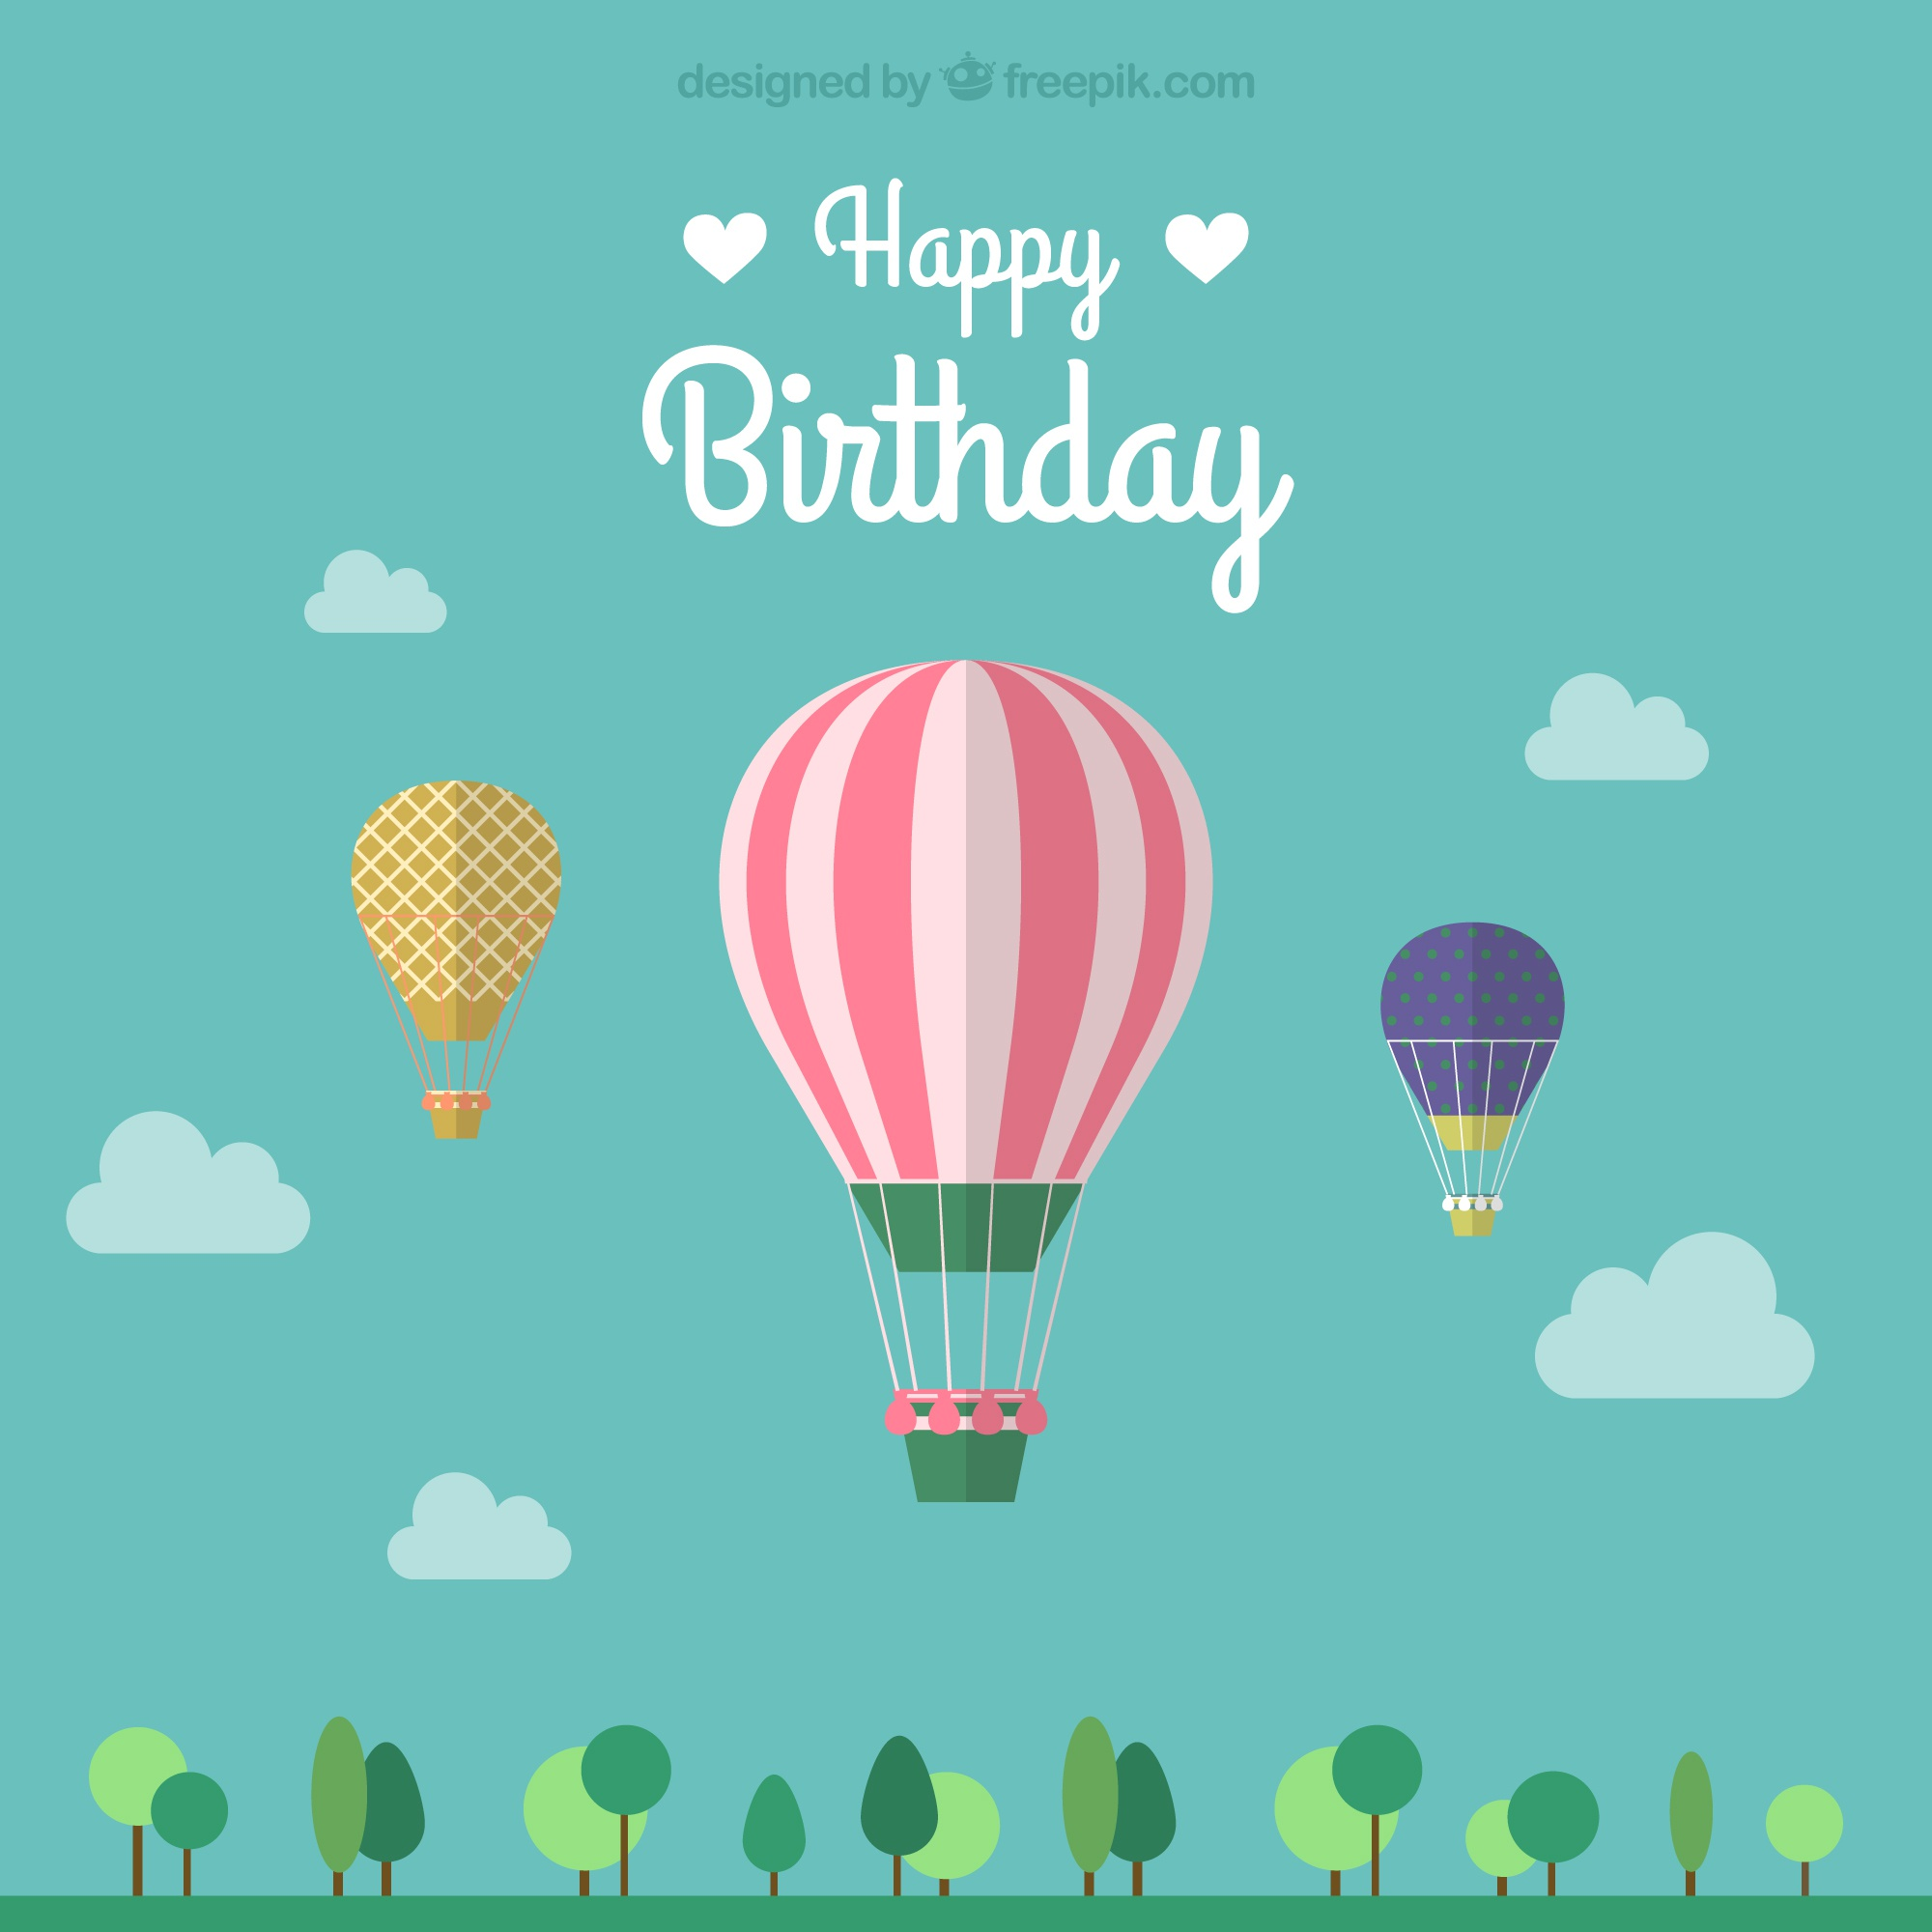 Birthday card with three hot air balloons